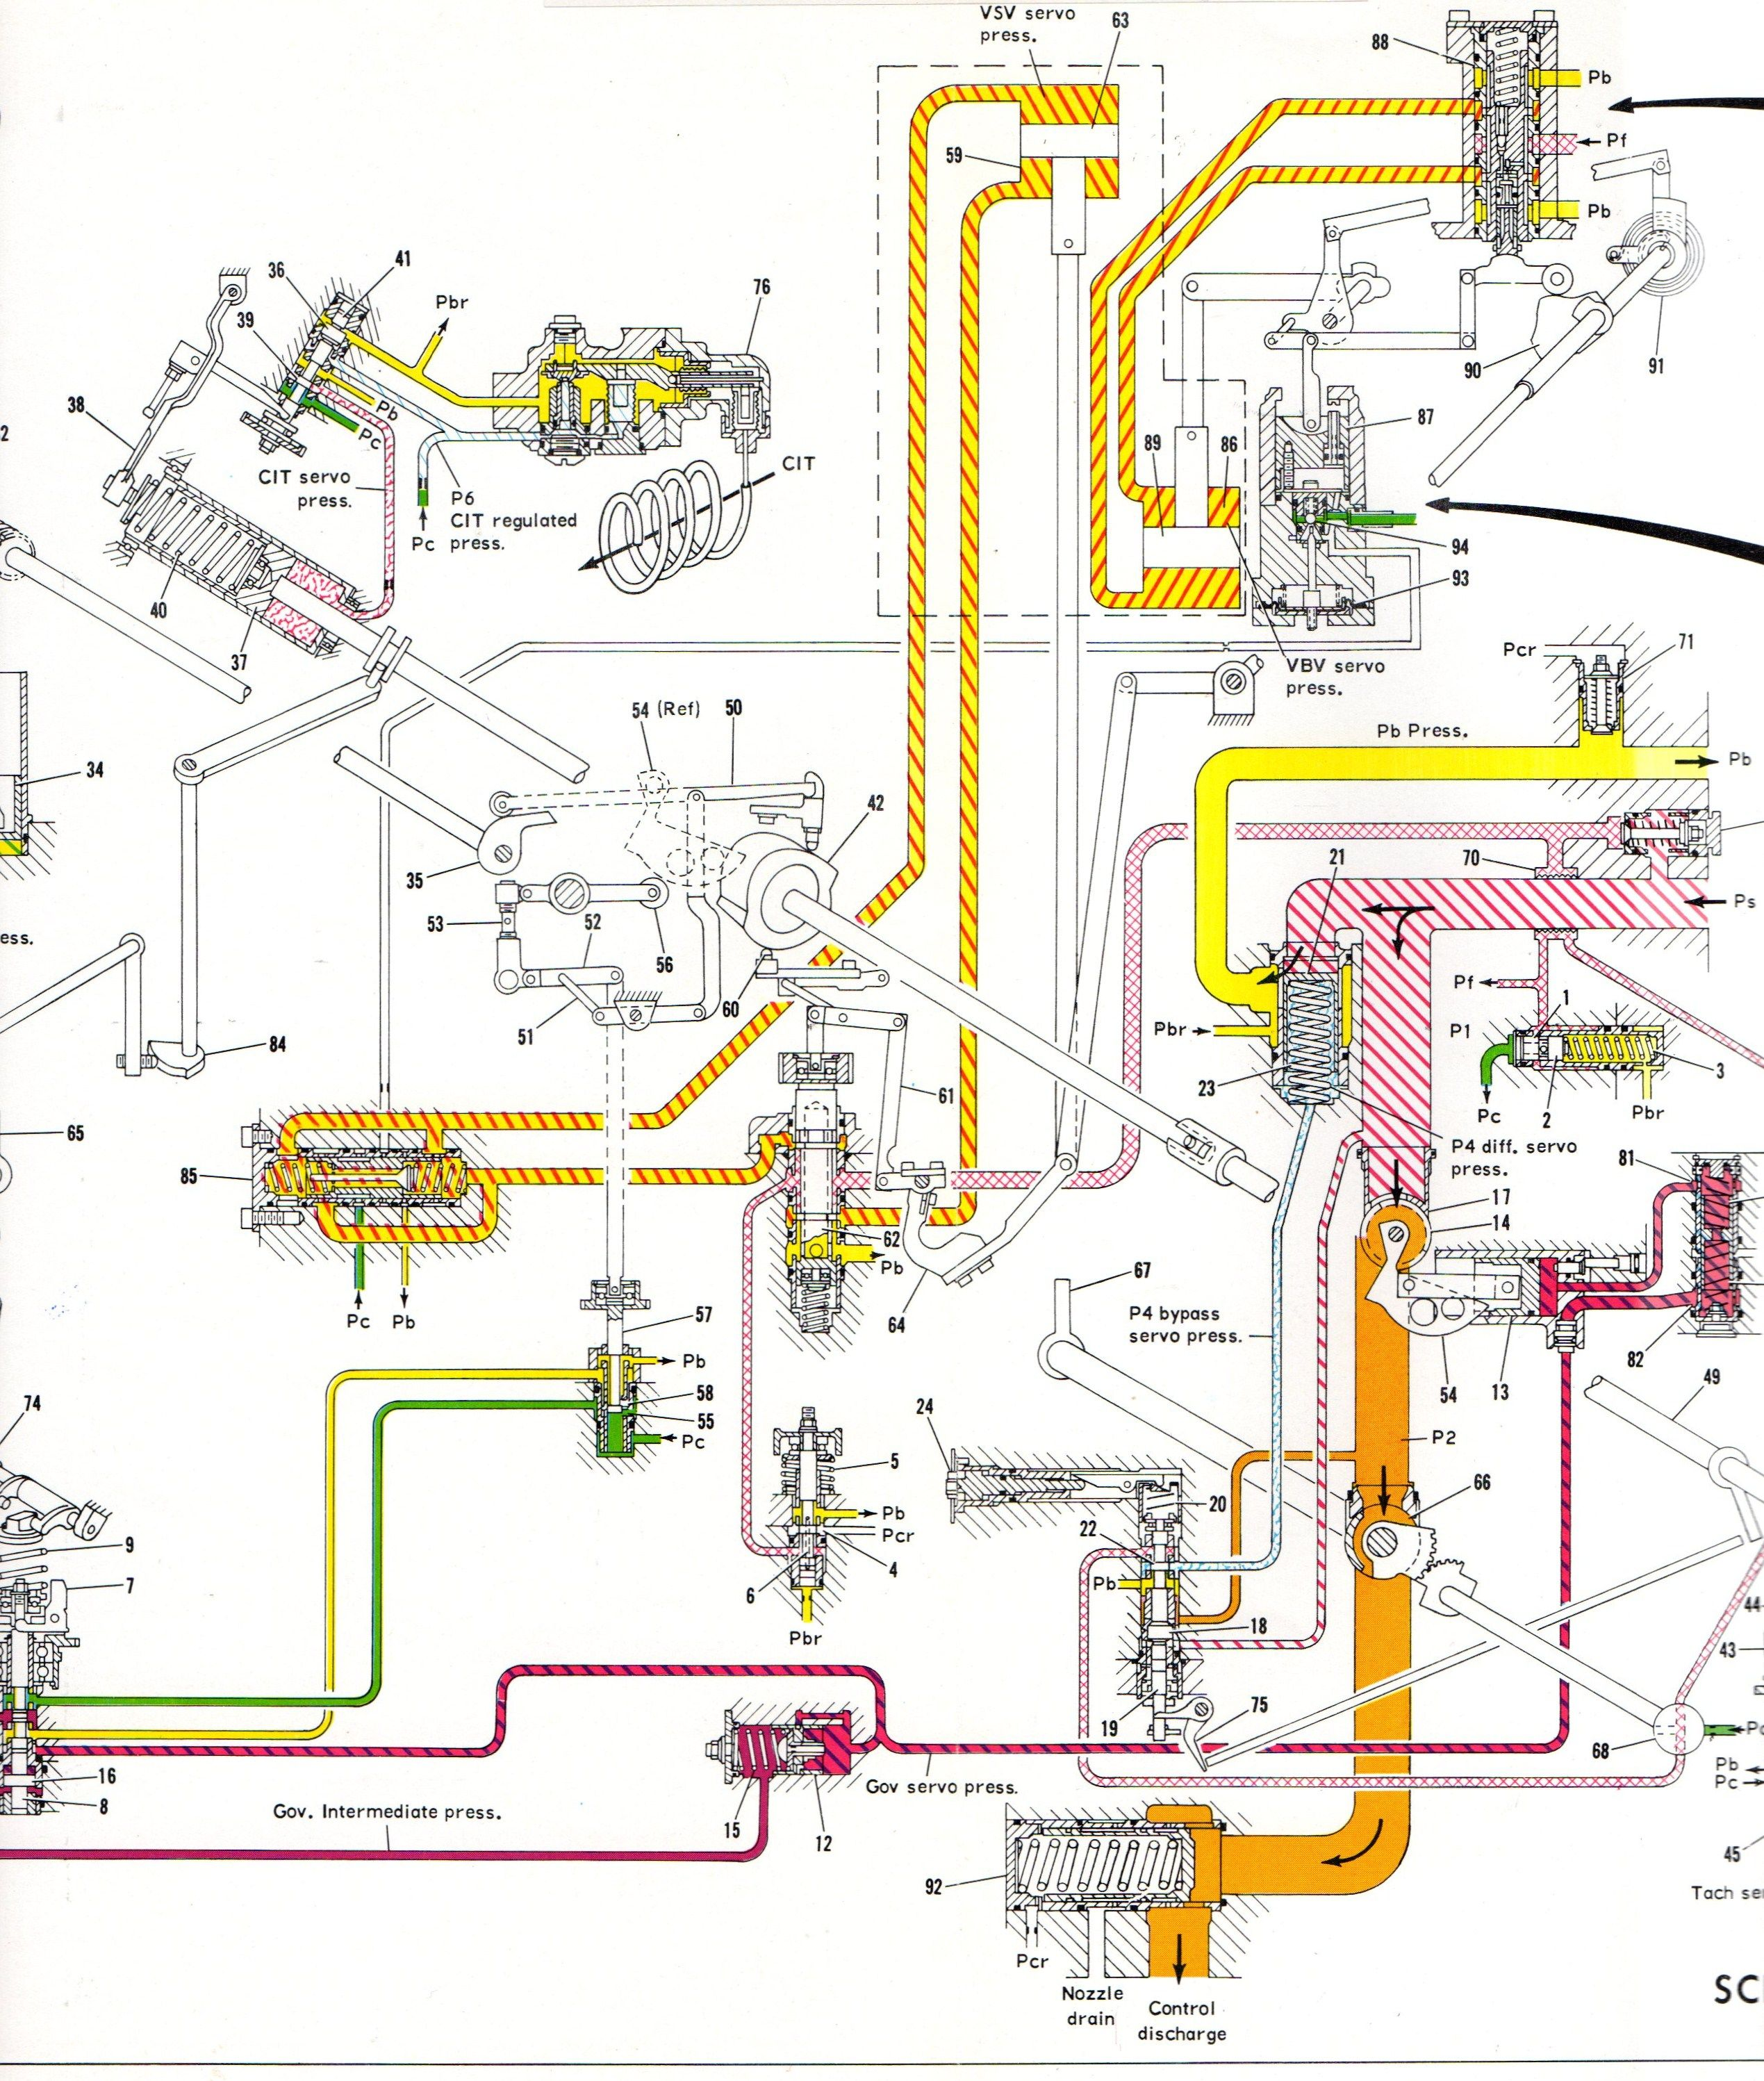 Woodward Governor Company Fuel Control Type 3059 For The Cf6 50 Gas Jet Engine Schematic Turbine